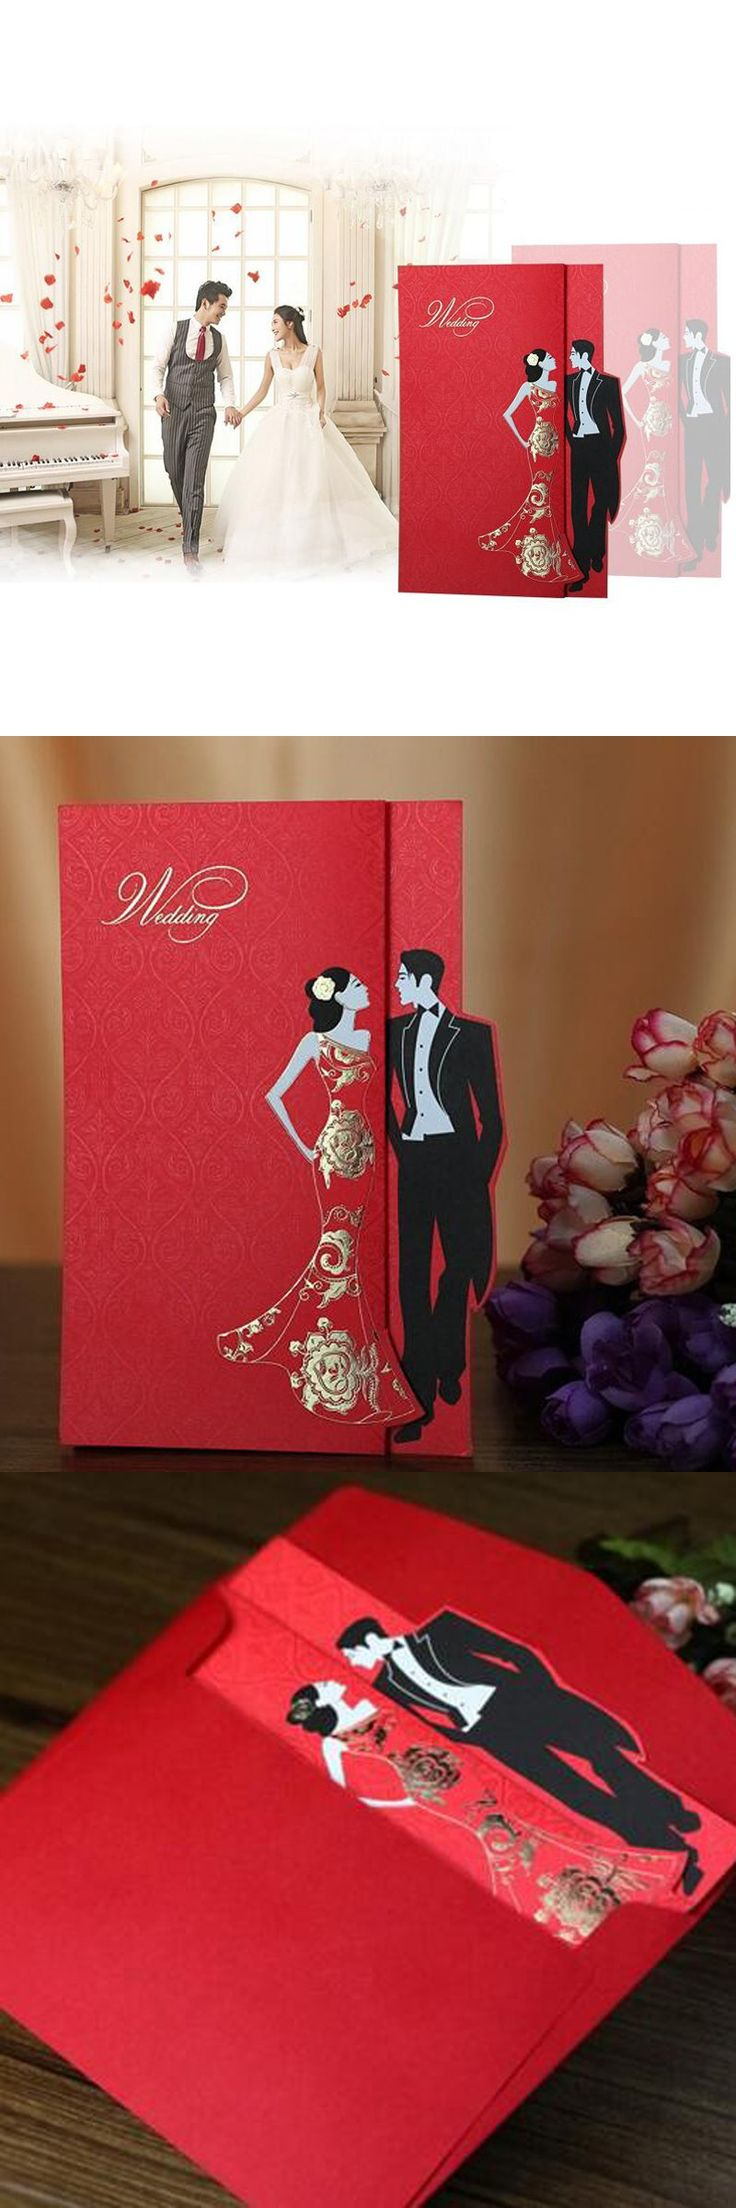 24 best undangan images on Pinterest | Wedding cards, Card wedding ...